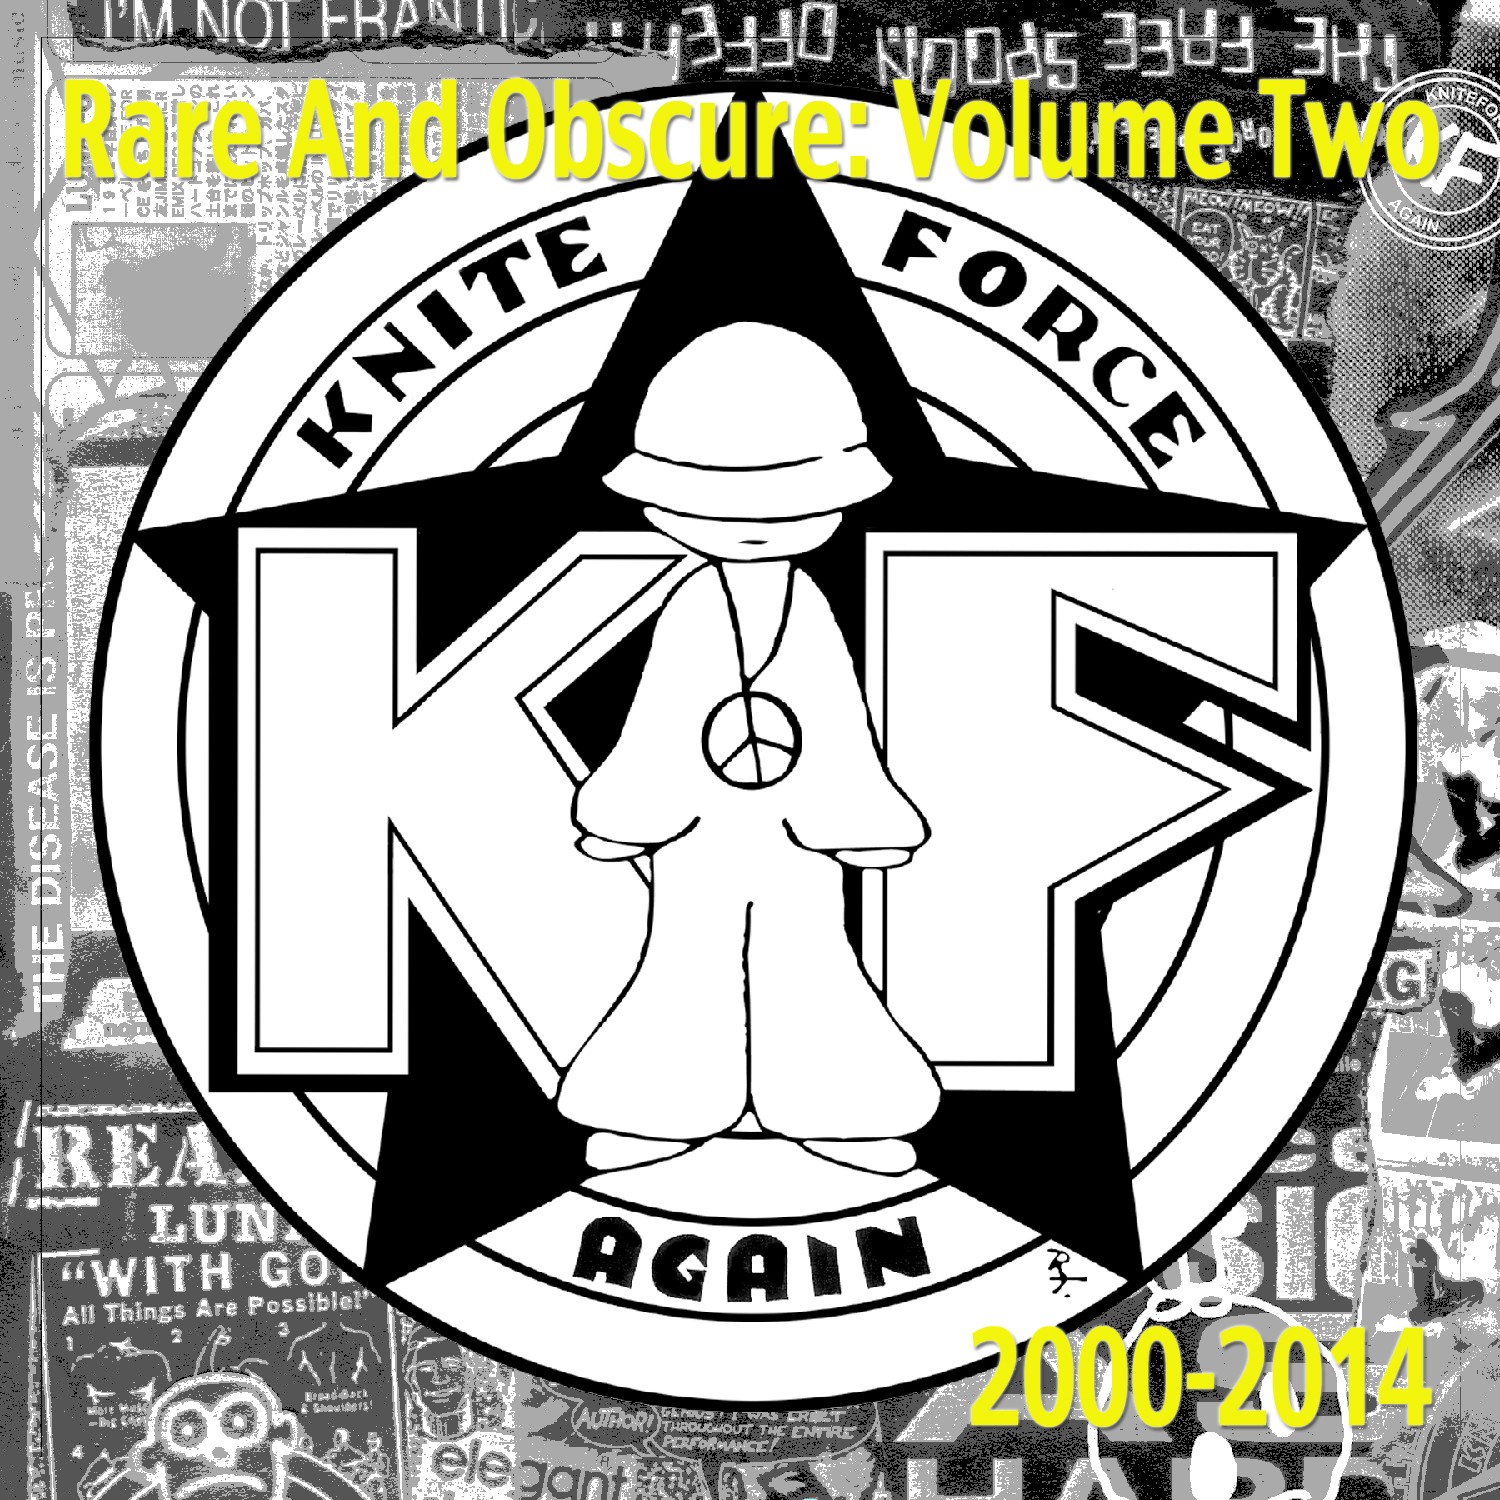 [KFLP013] Various - Rare And Obscure Volume 2 (Digital Only)